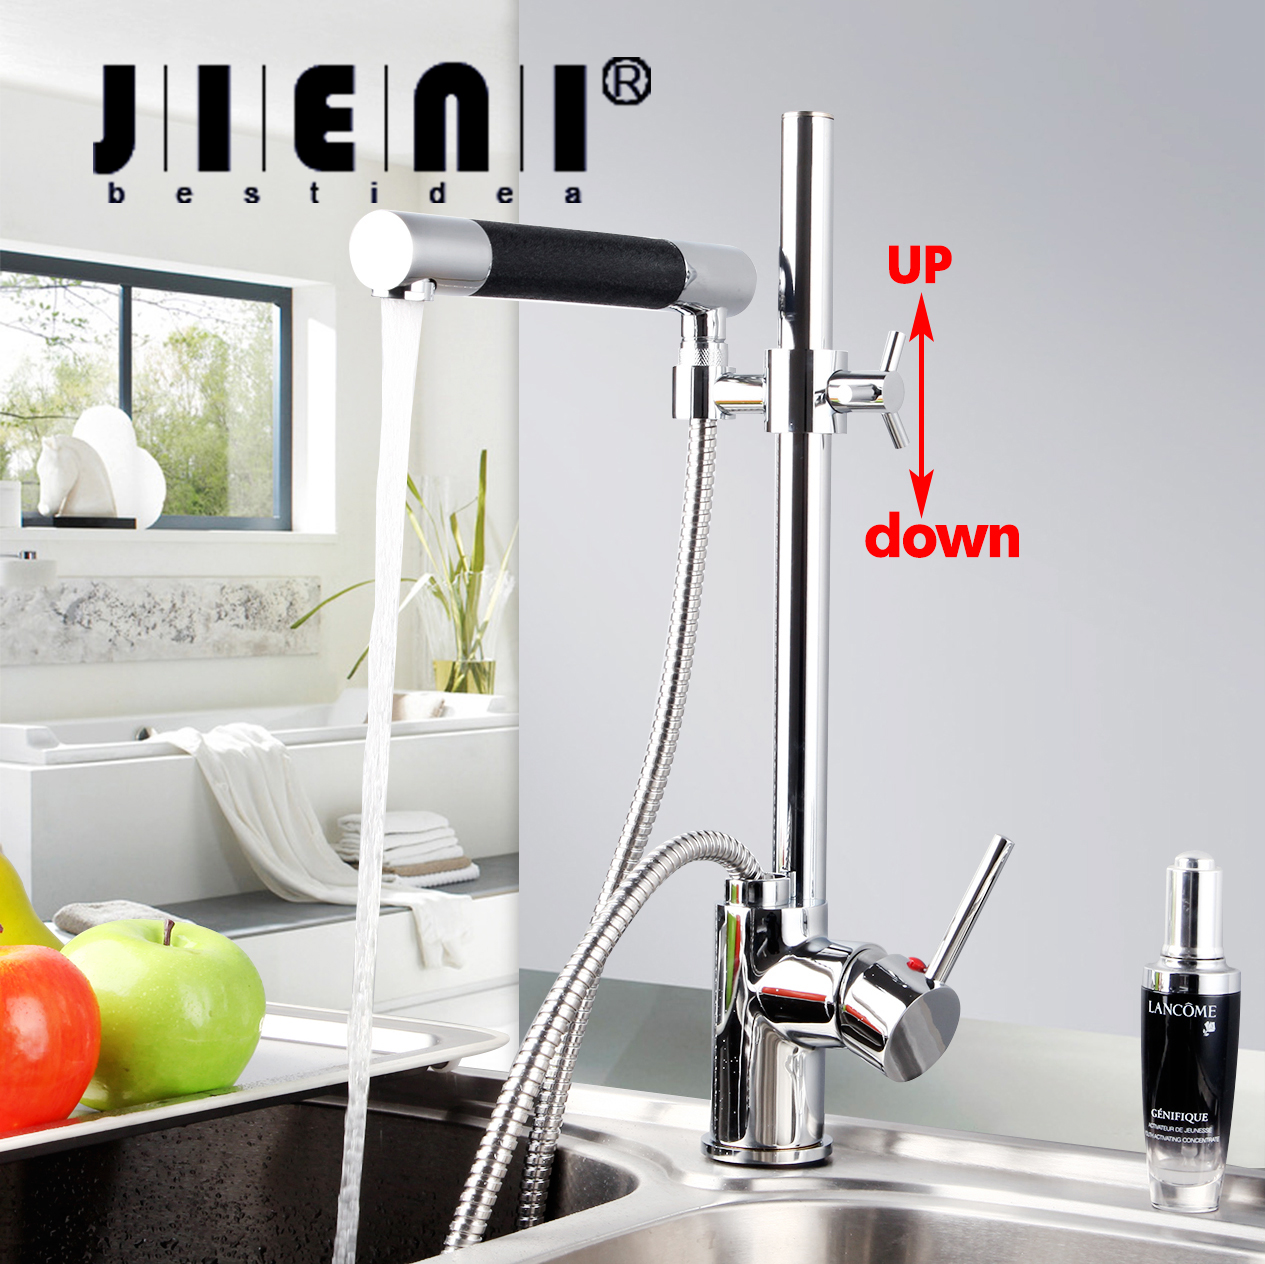 Pull Down Kitchen Faucet Polished Chrome Deck Mount One Hole / Handle Mixer Tap Mixer Taps Dual Handle  JN92350 deck mount single handle kitchen faucet one handle chrome brass kitchen sink mixer tap dual sprayer functions